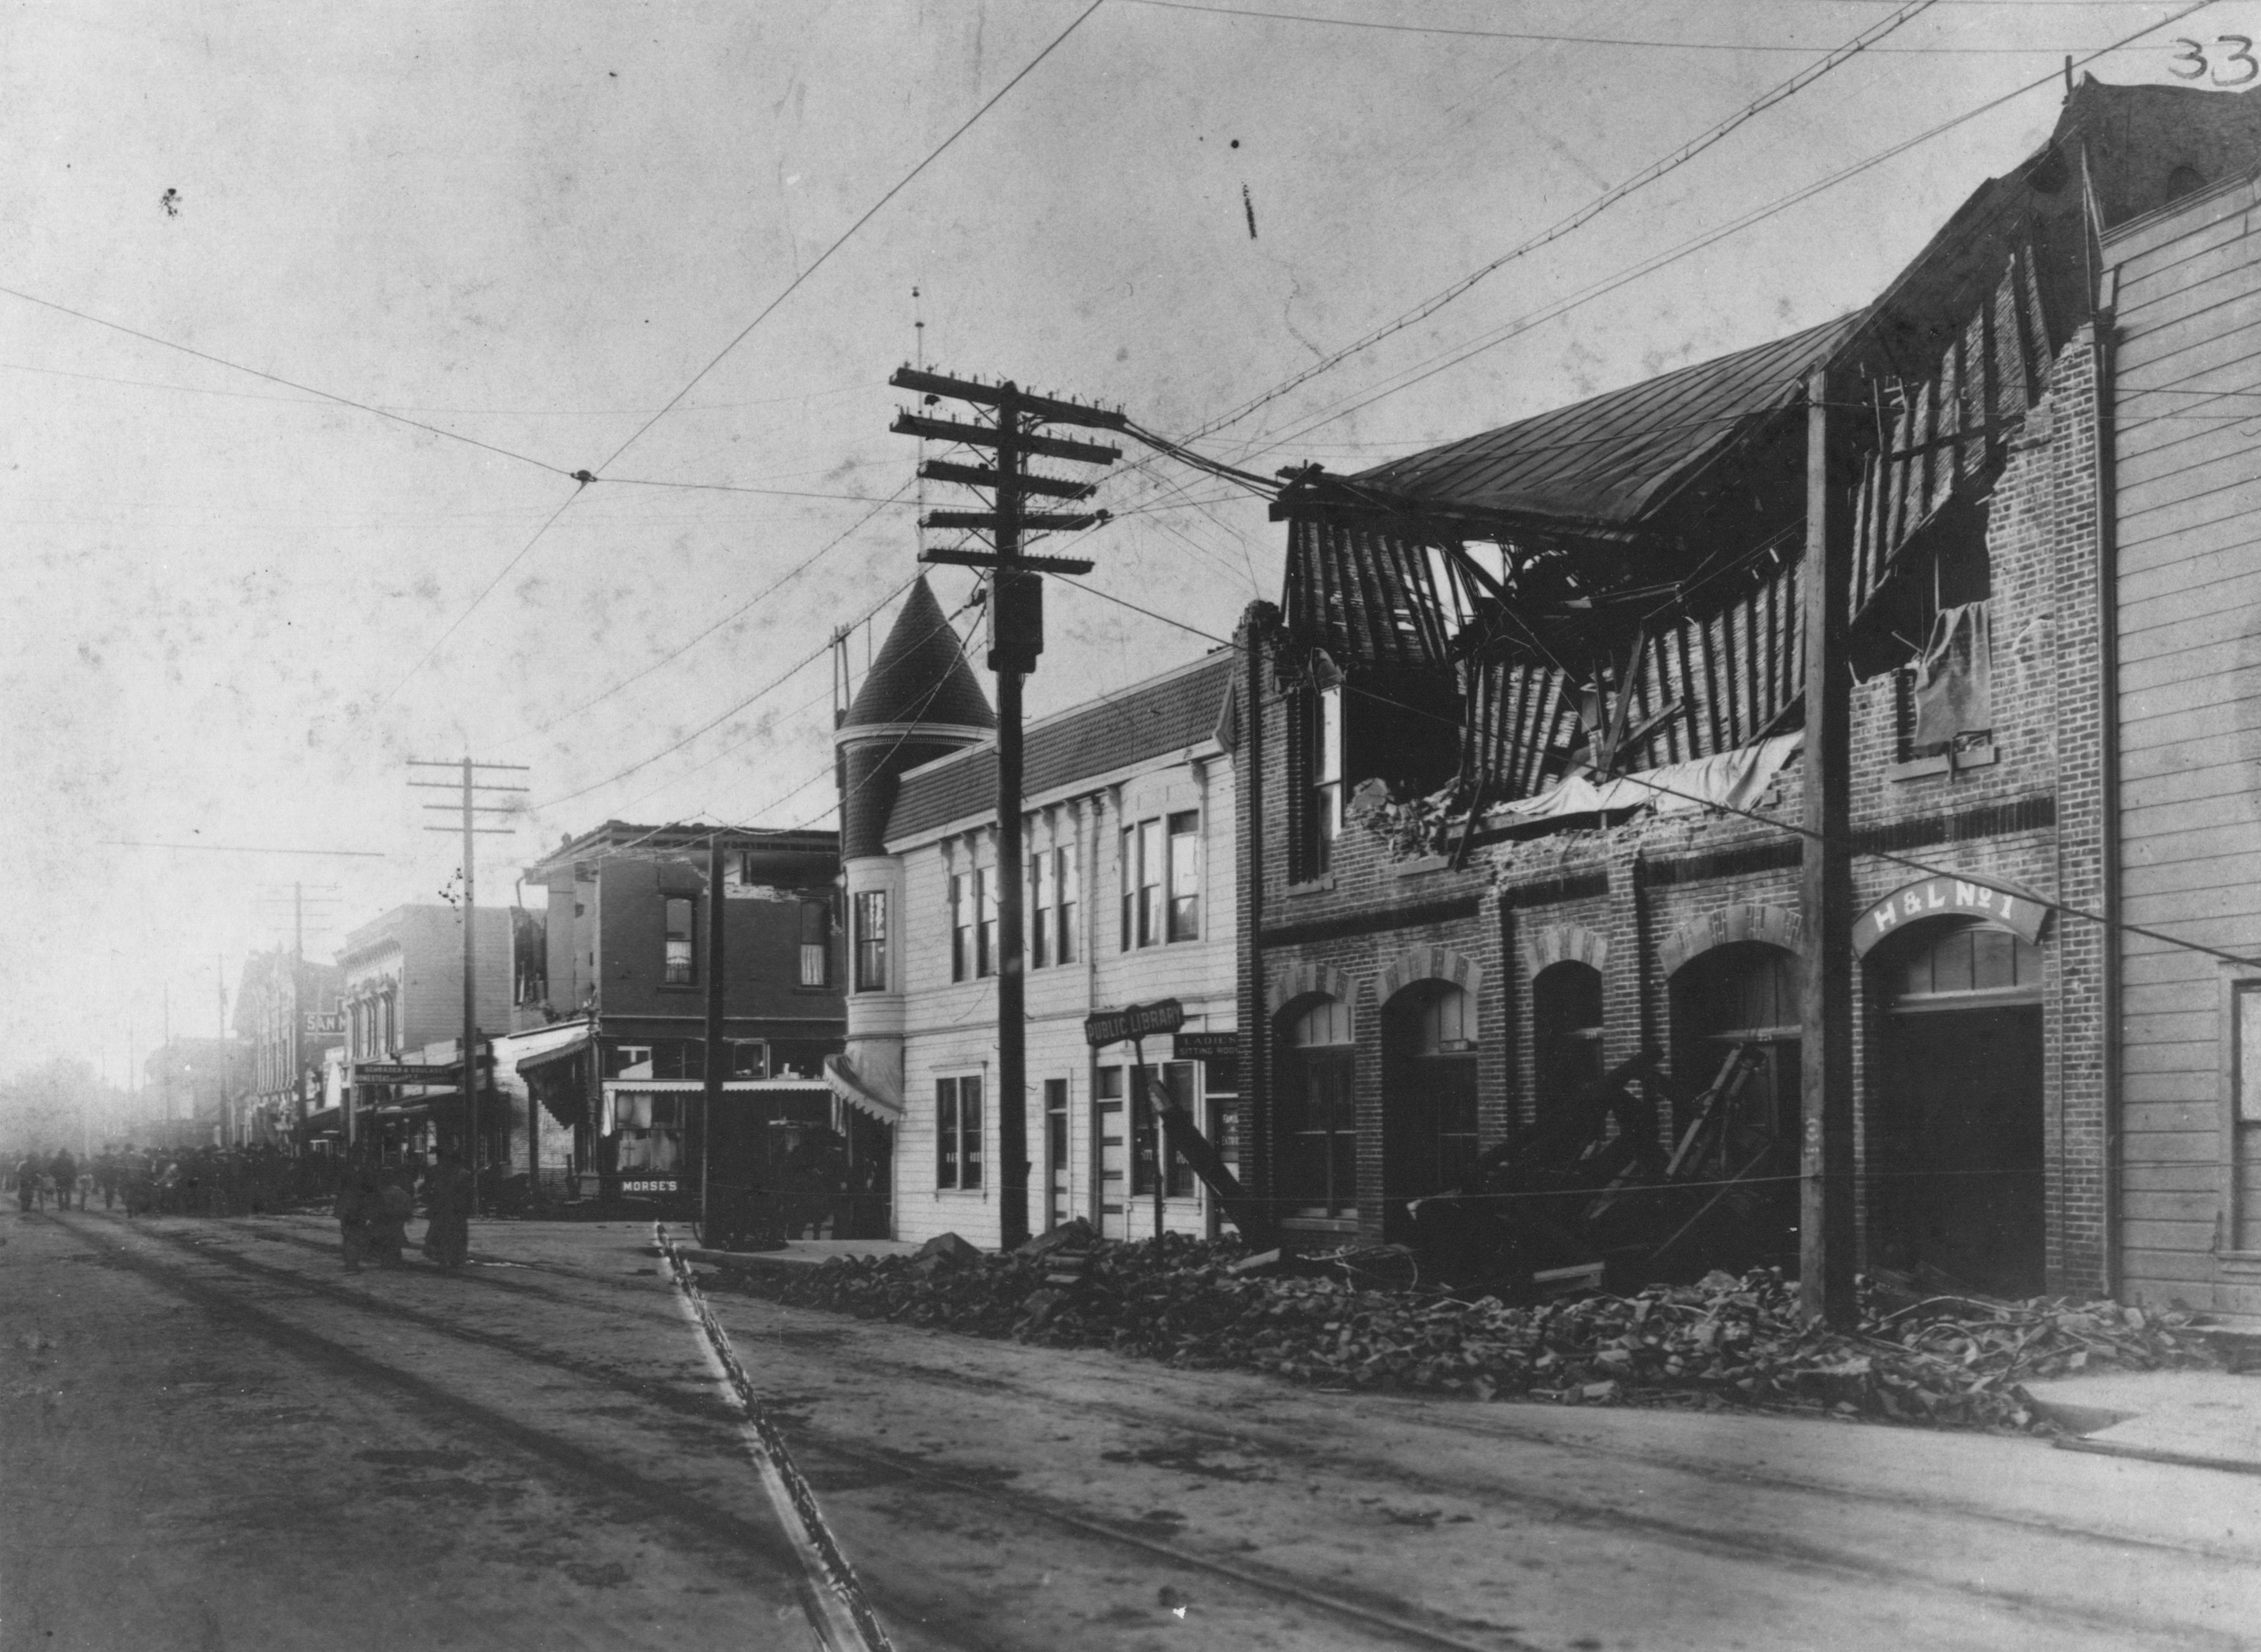 Damage from 1906 Earthquake